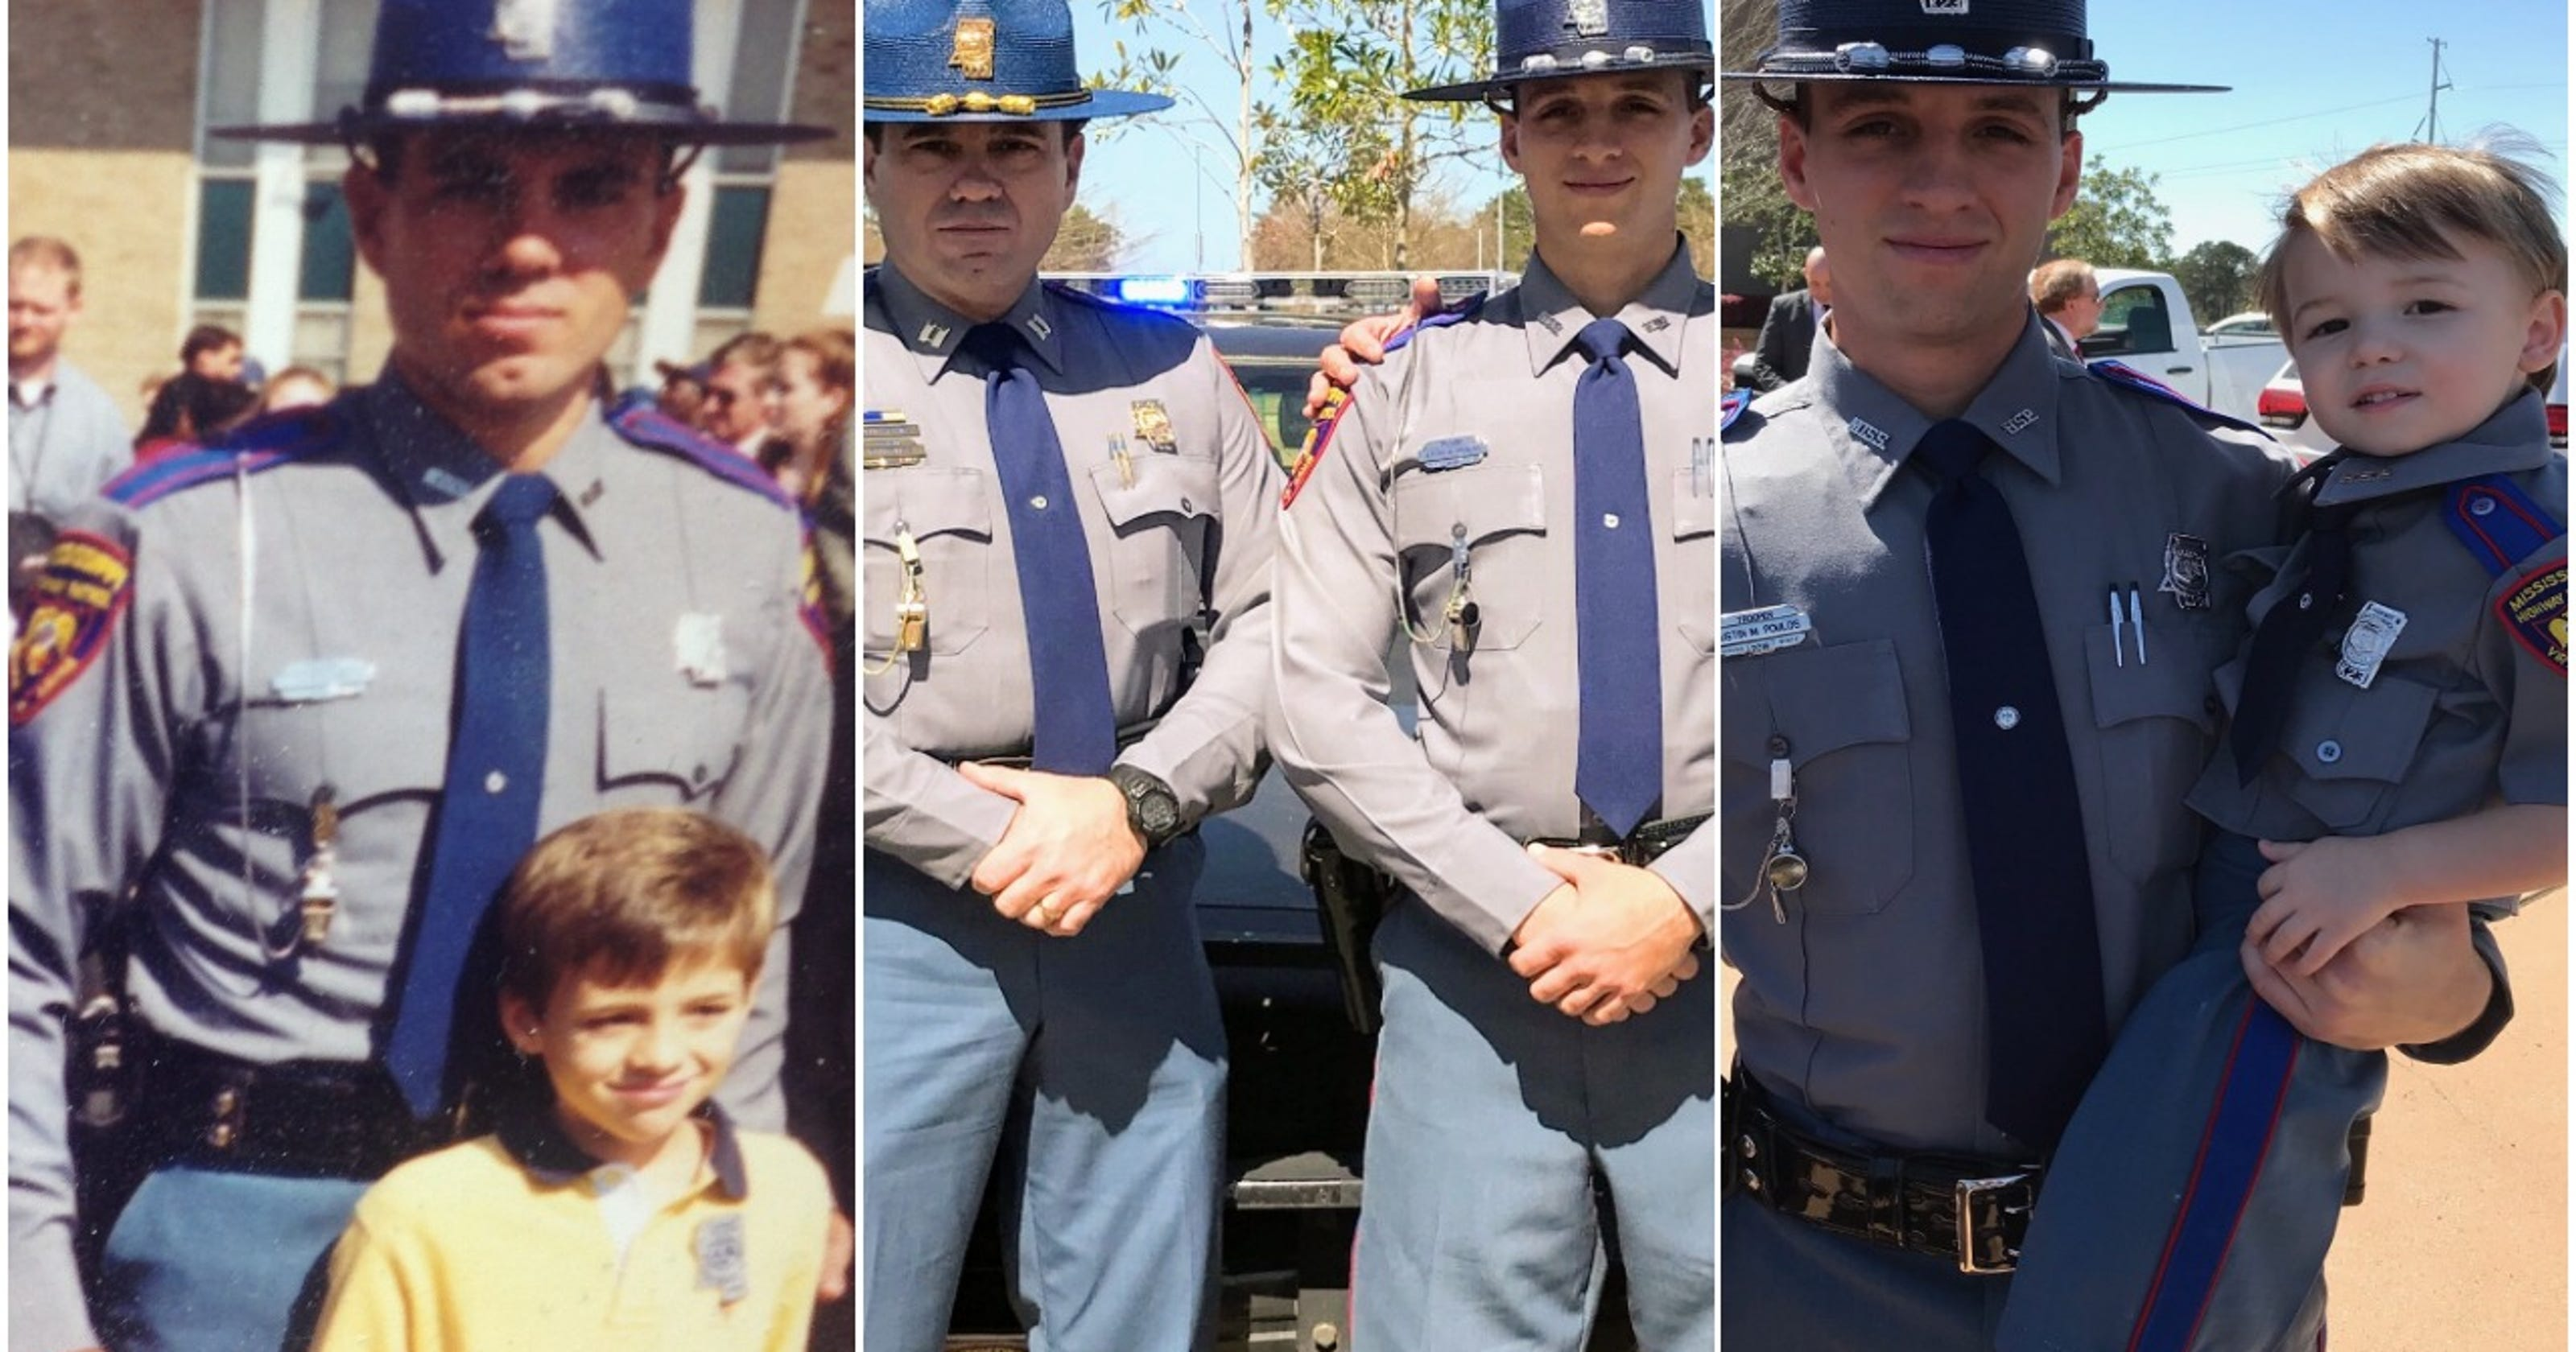 Mississippi Highway Patrol legacy passed down from generation to